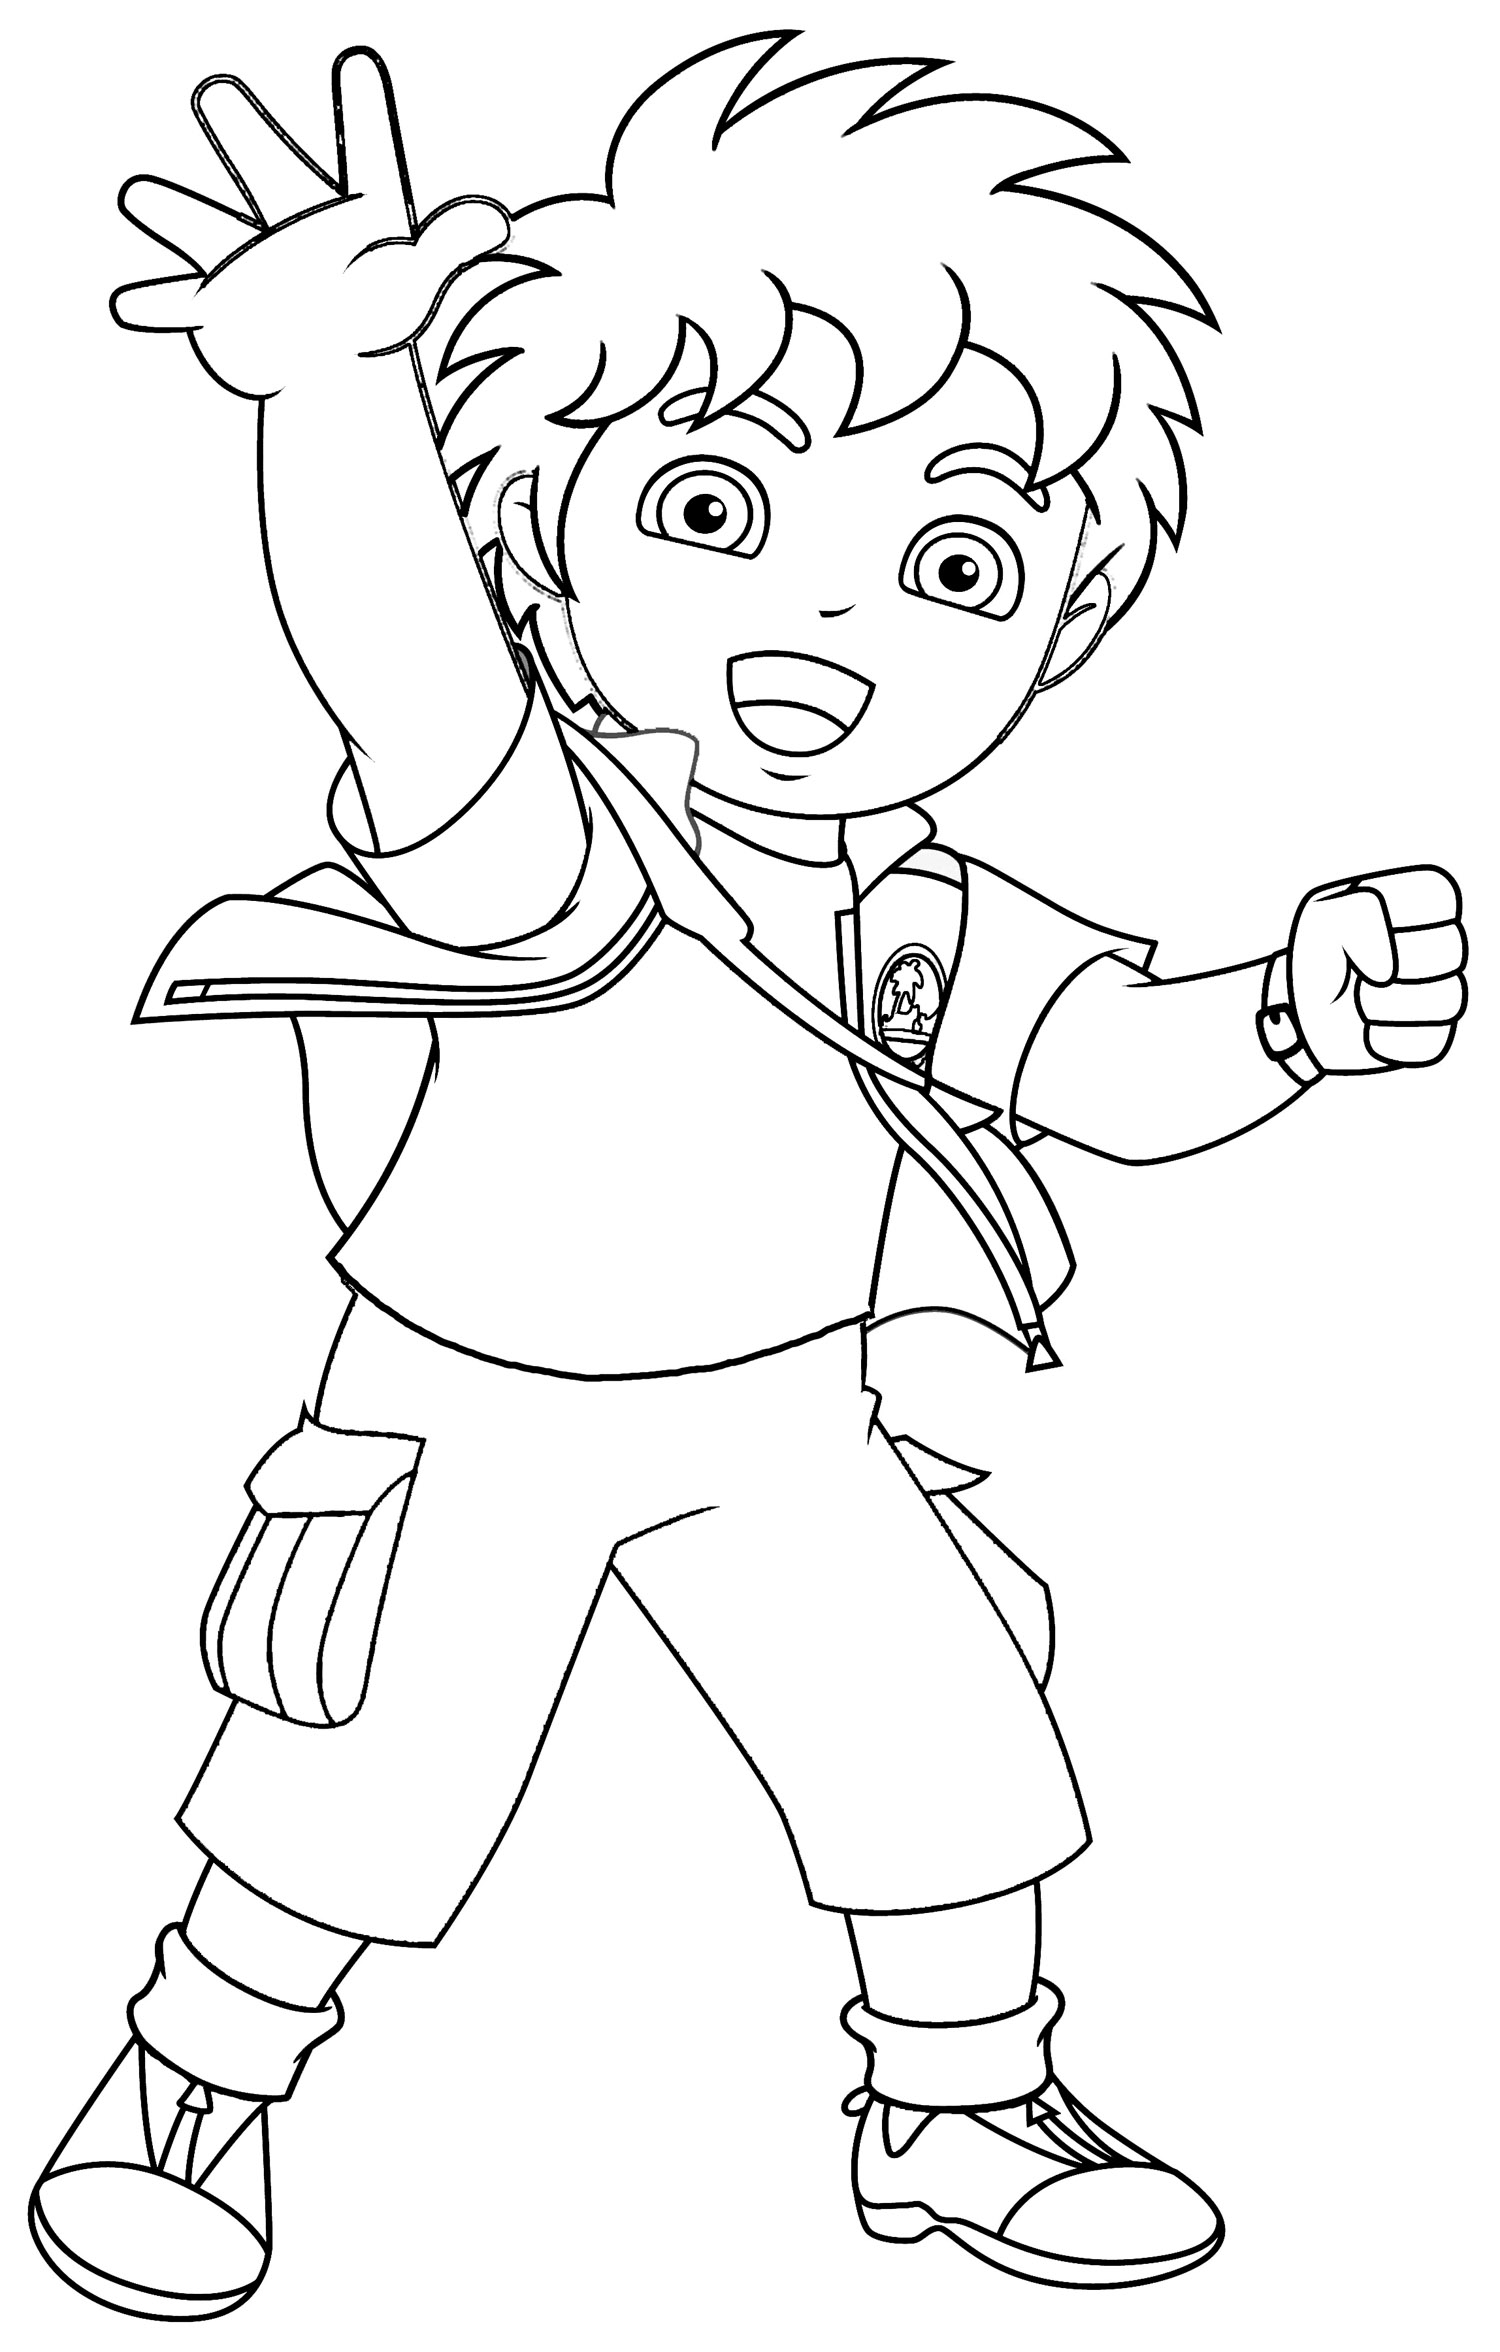 Nick Jr Coloring Pages 8